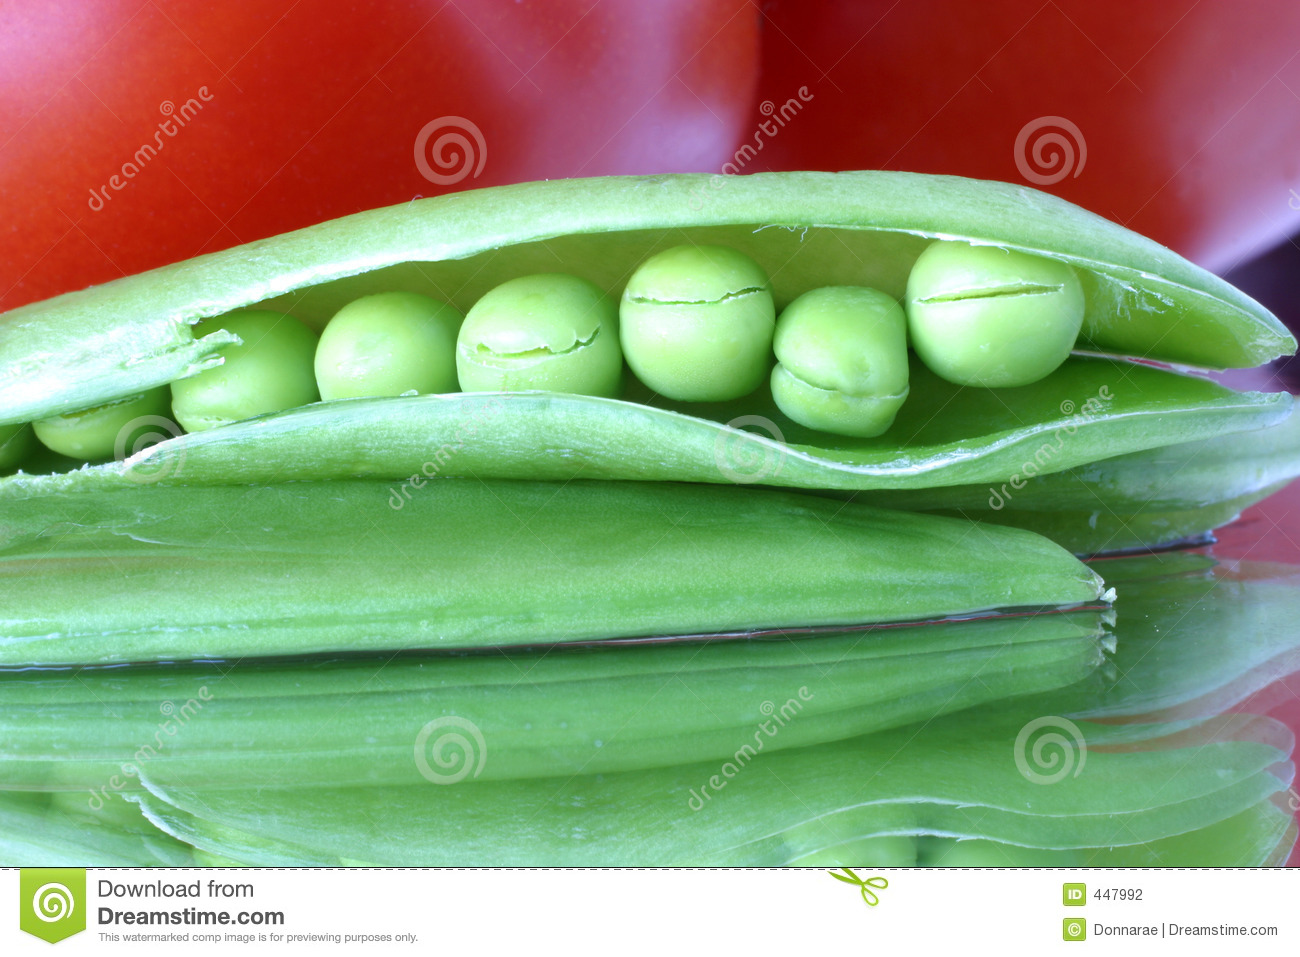 Fresh snow peas in a pod close-up. A colorful abstract